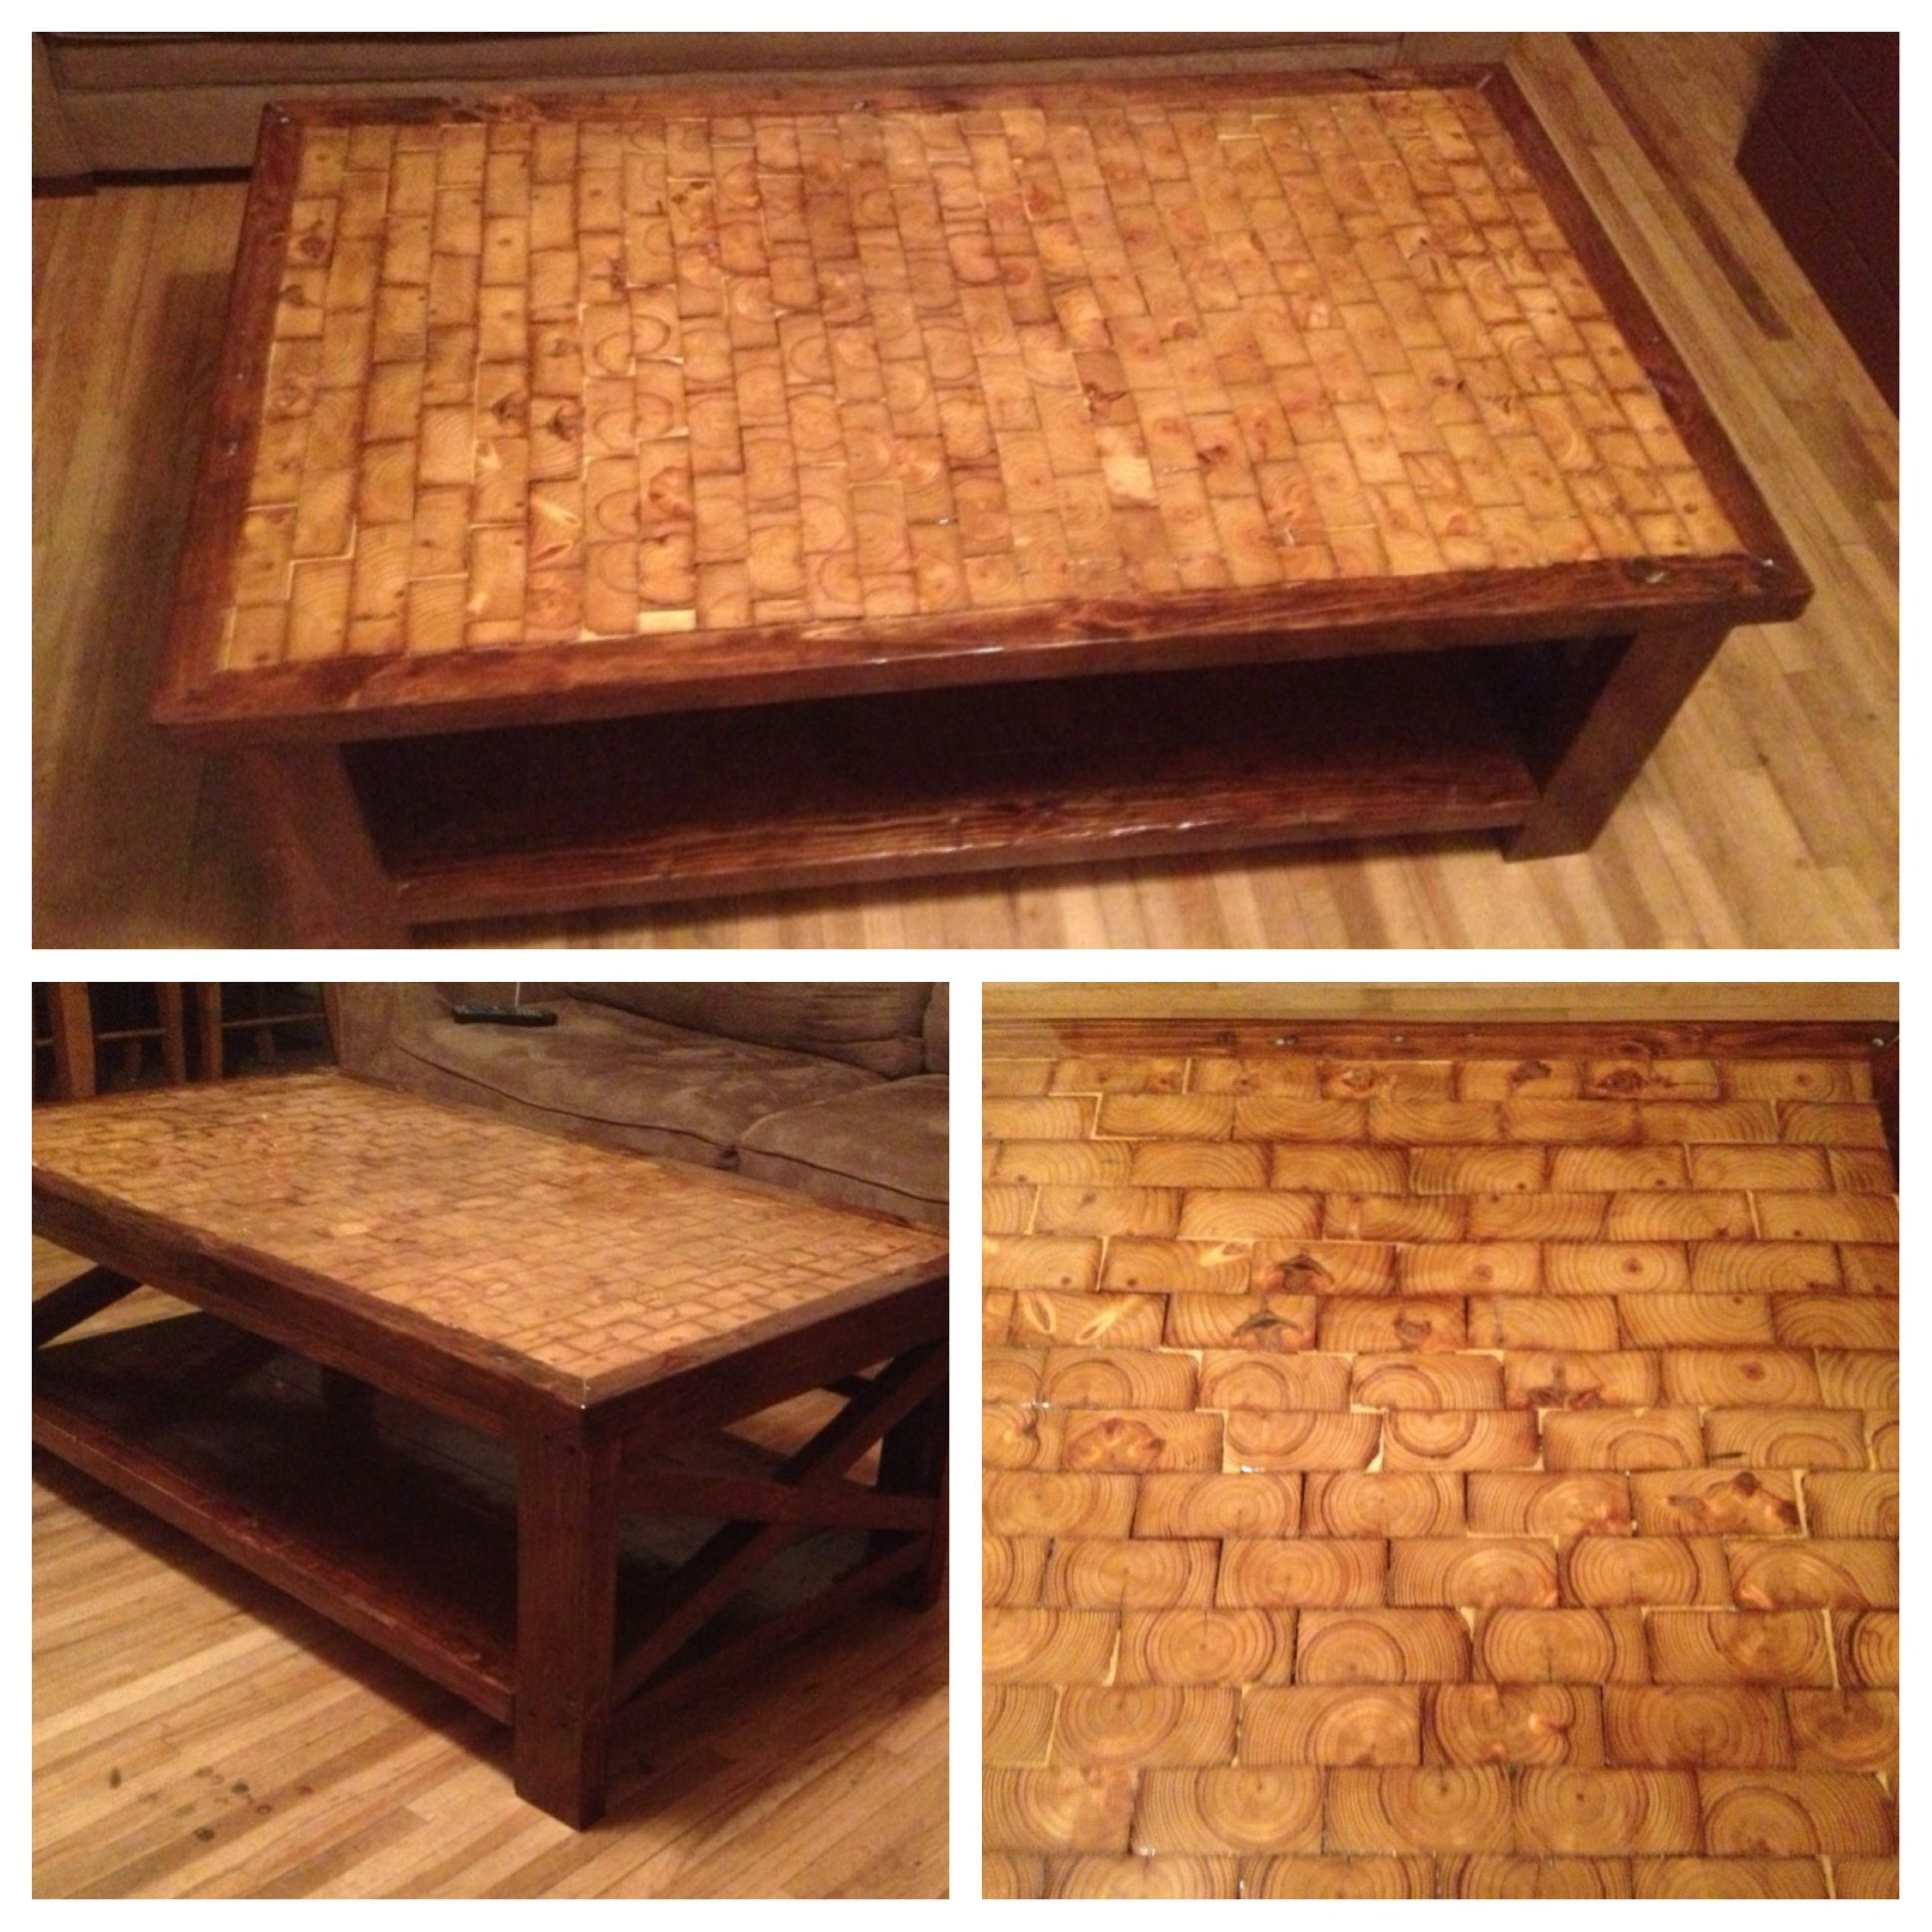 Coffee table my husband built from all reclaimed lumber from a